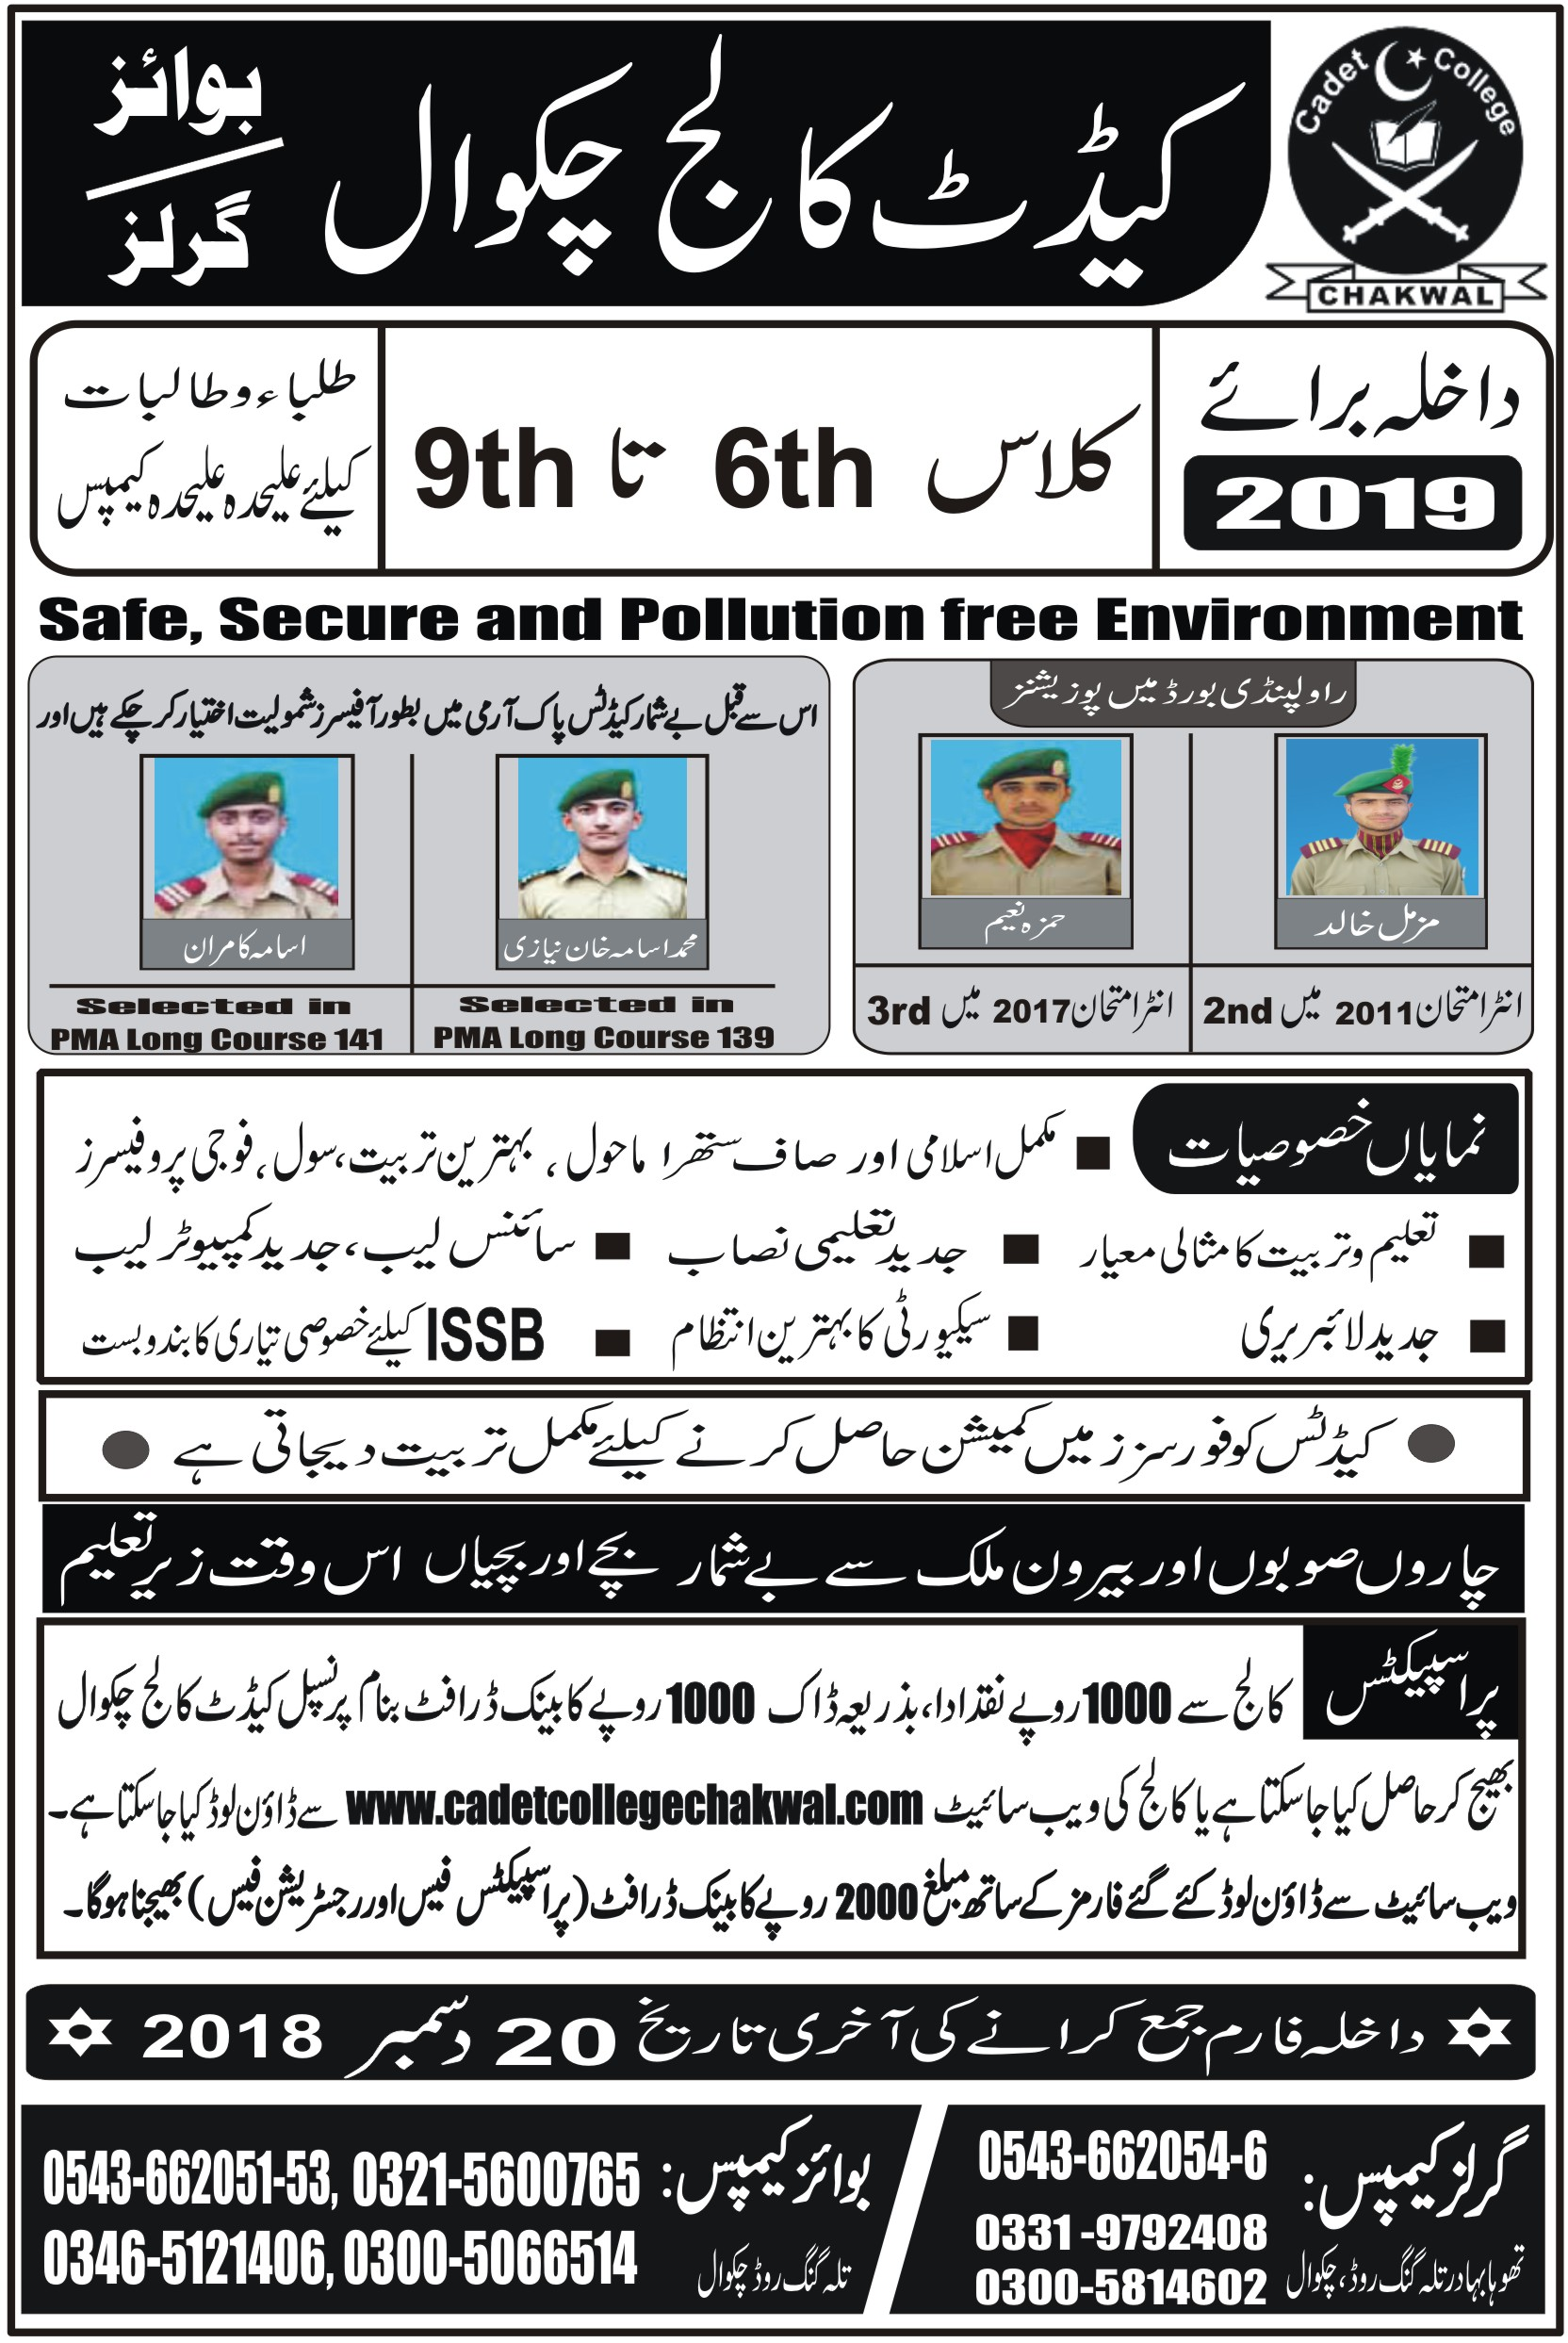 Cadet College Chakwal Admissions 2019 Online Application Form, Fee Structure